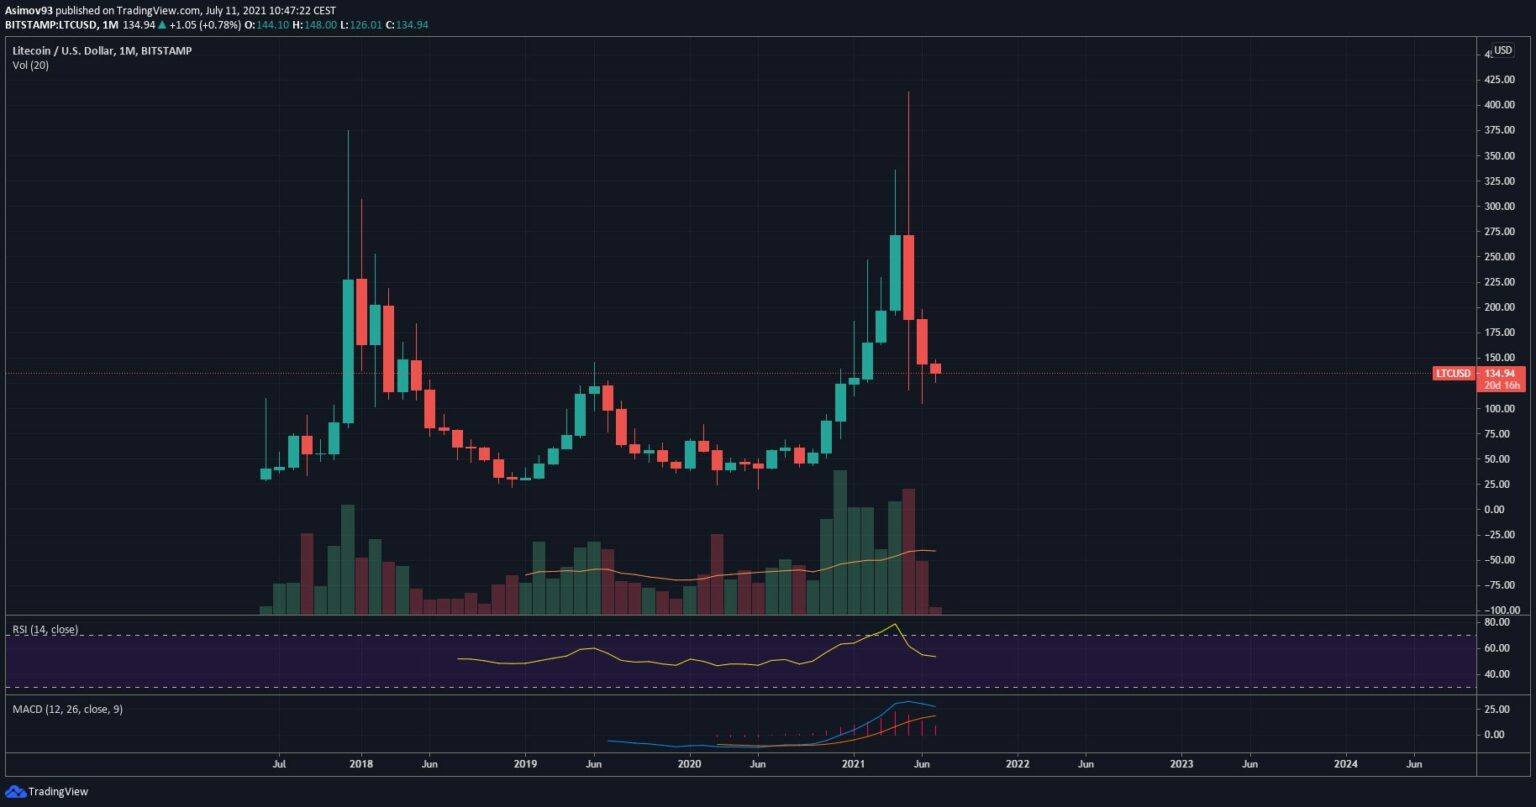 11.07.21 Technical analysis of ETH / USD and LTC / USD - monthly charts